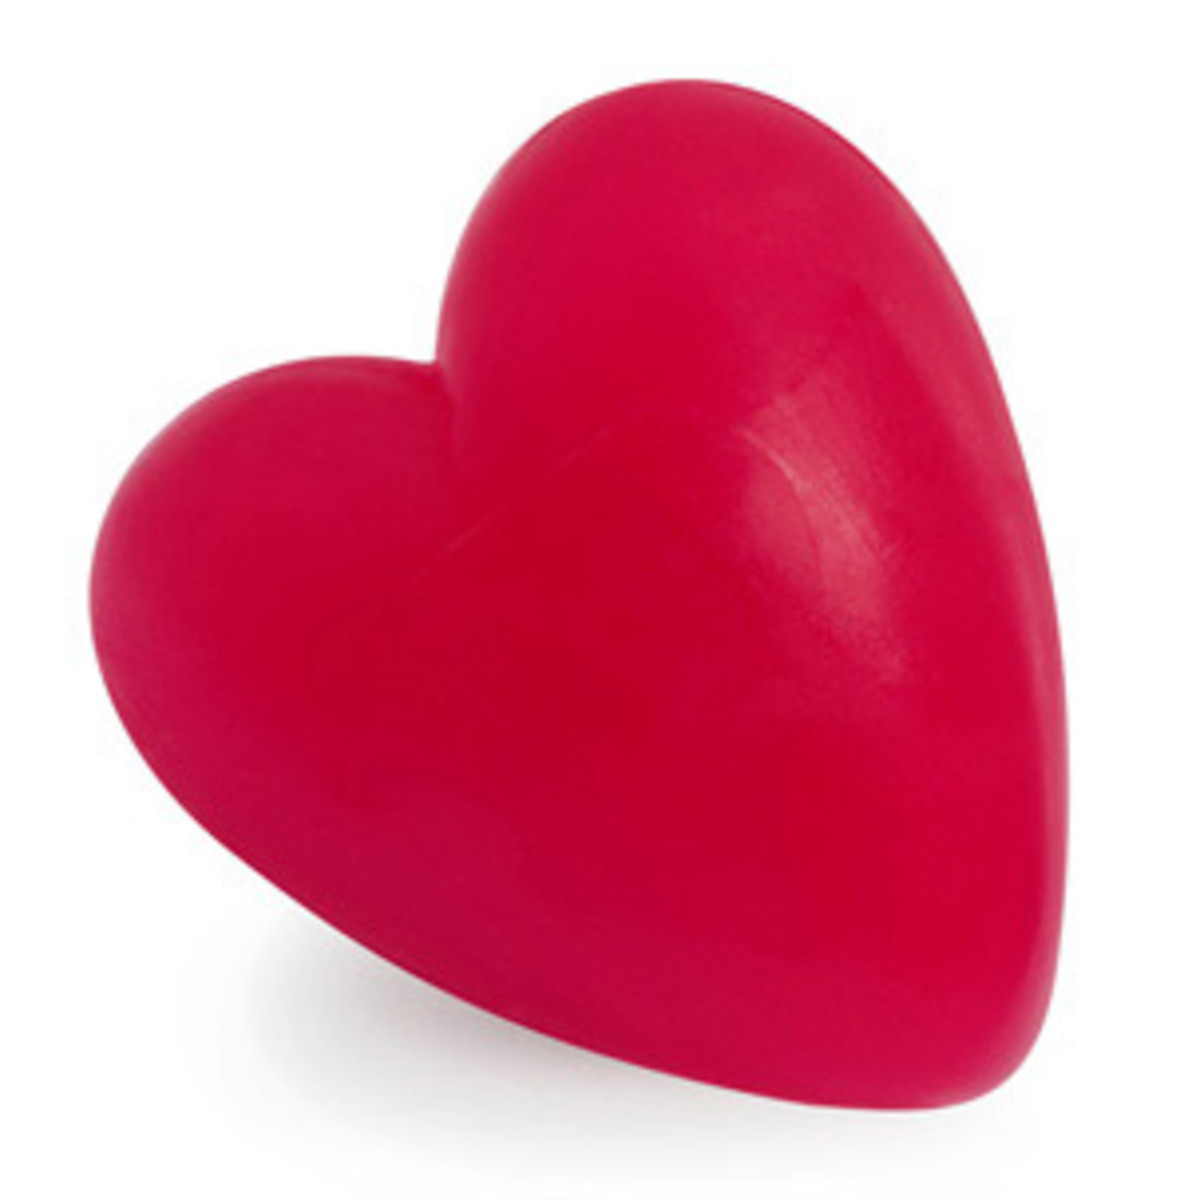 Fruits-Passion-Heart-Shaped-Glycerin-Soap